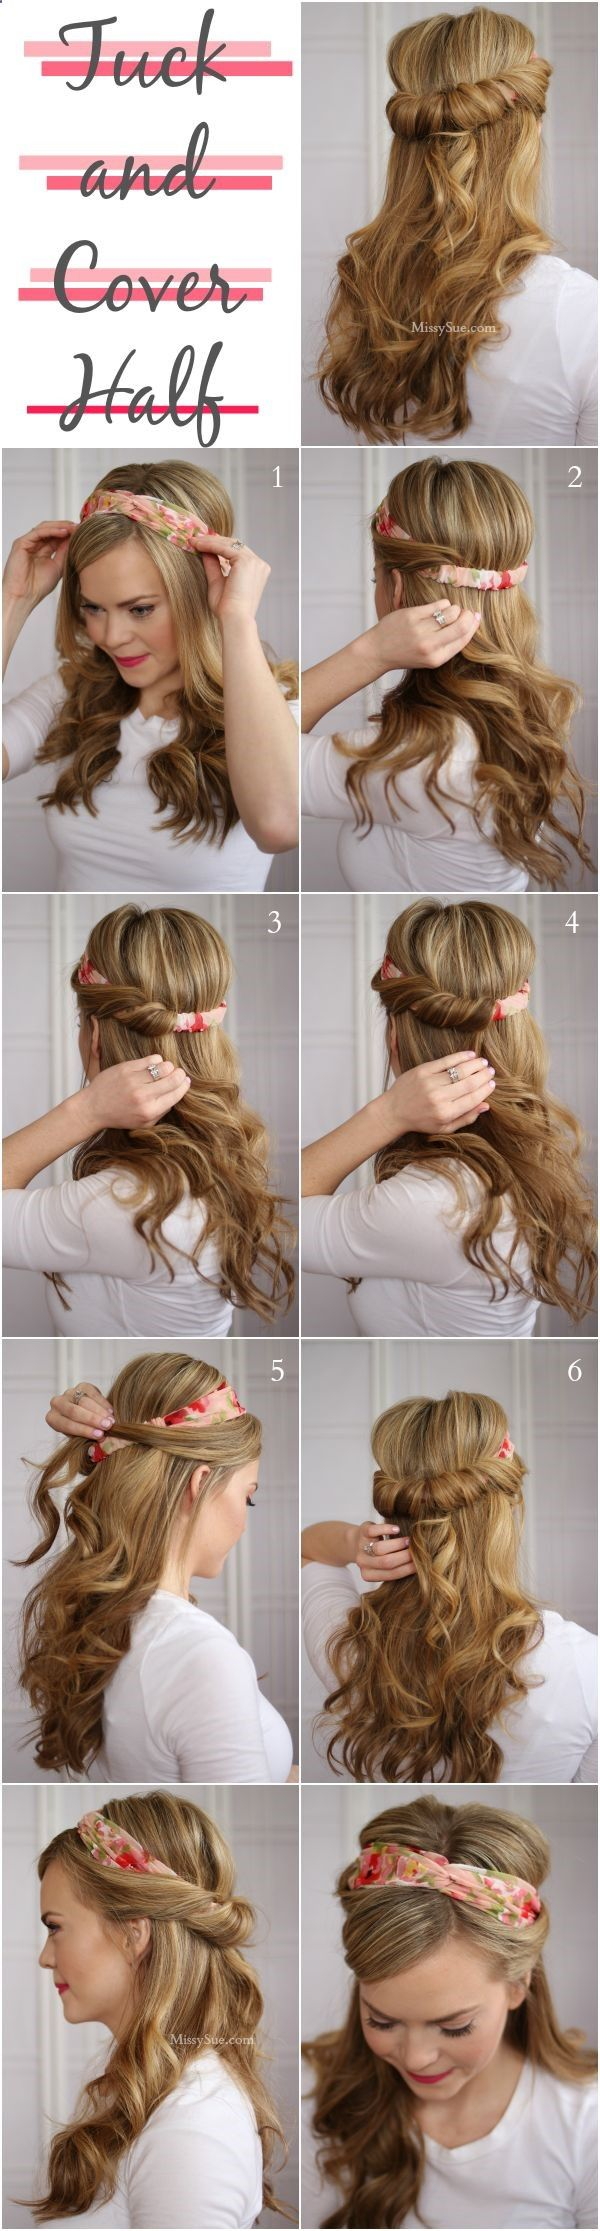 Tuck and Cover Half up hairstyle, the perfect way to your favorite headband!:: Pin Up Hair:: Vintage hairstyles:: retro headband:: Half up half down